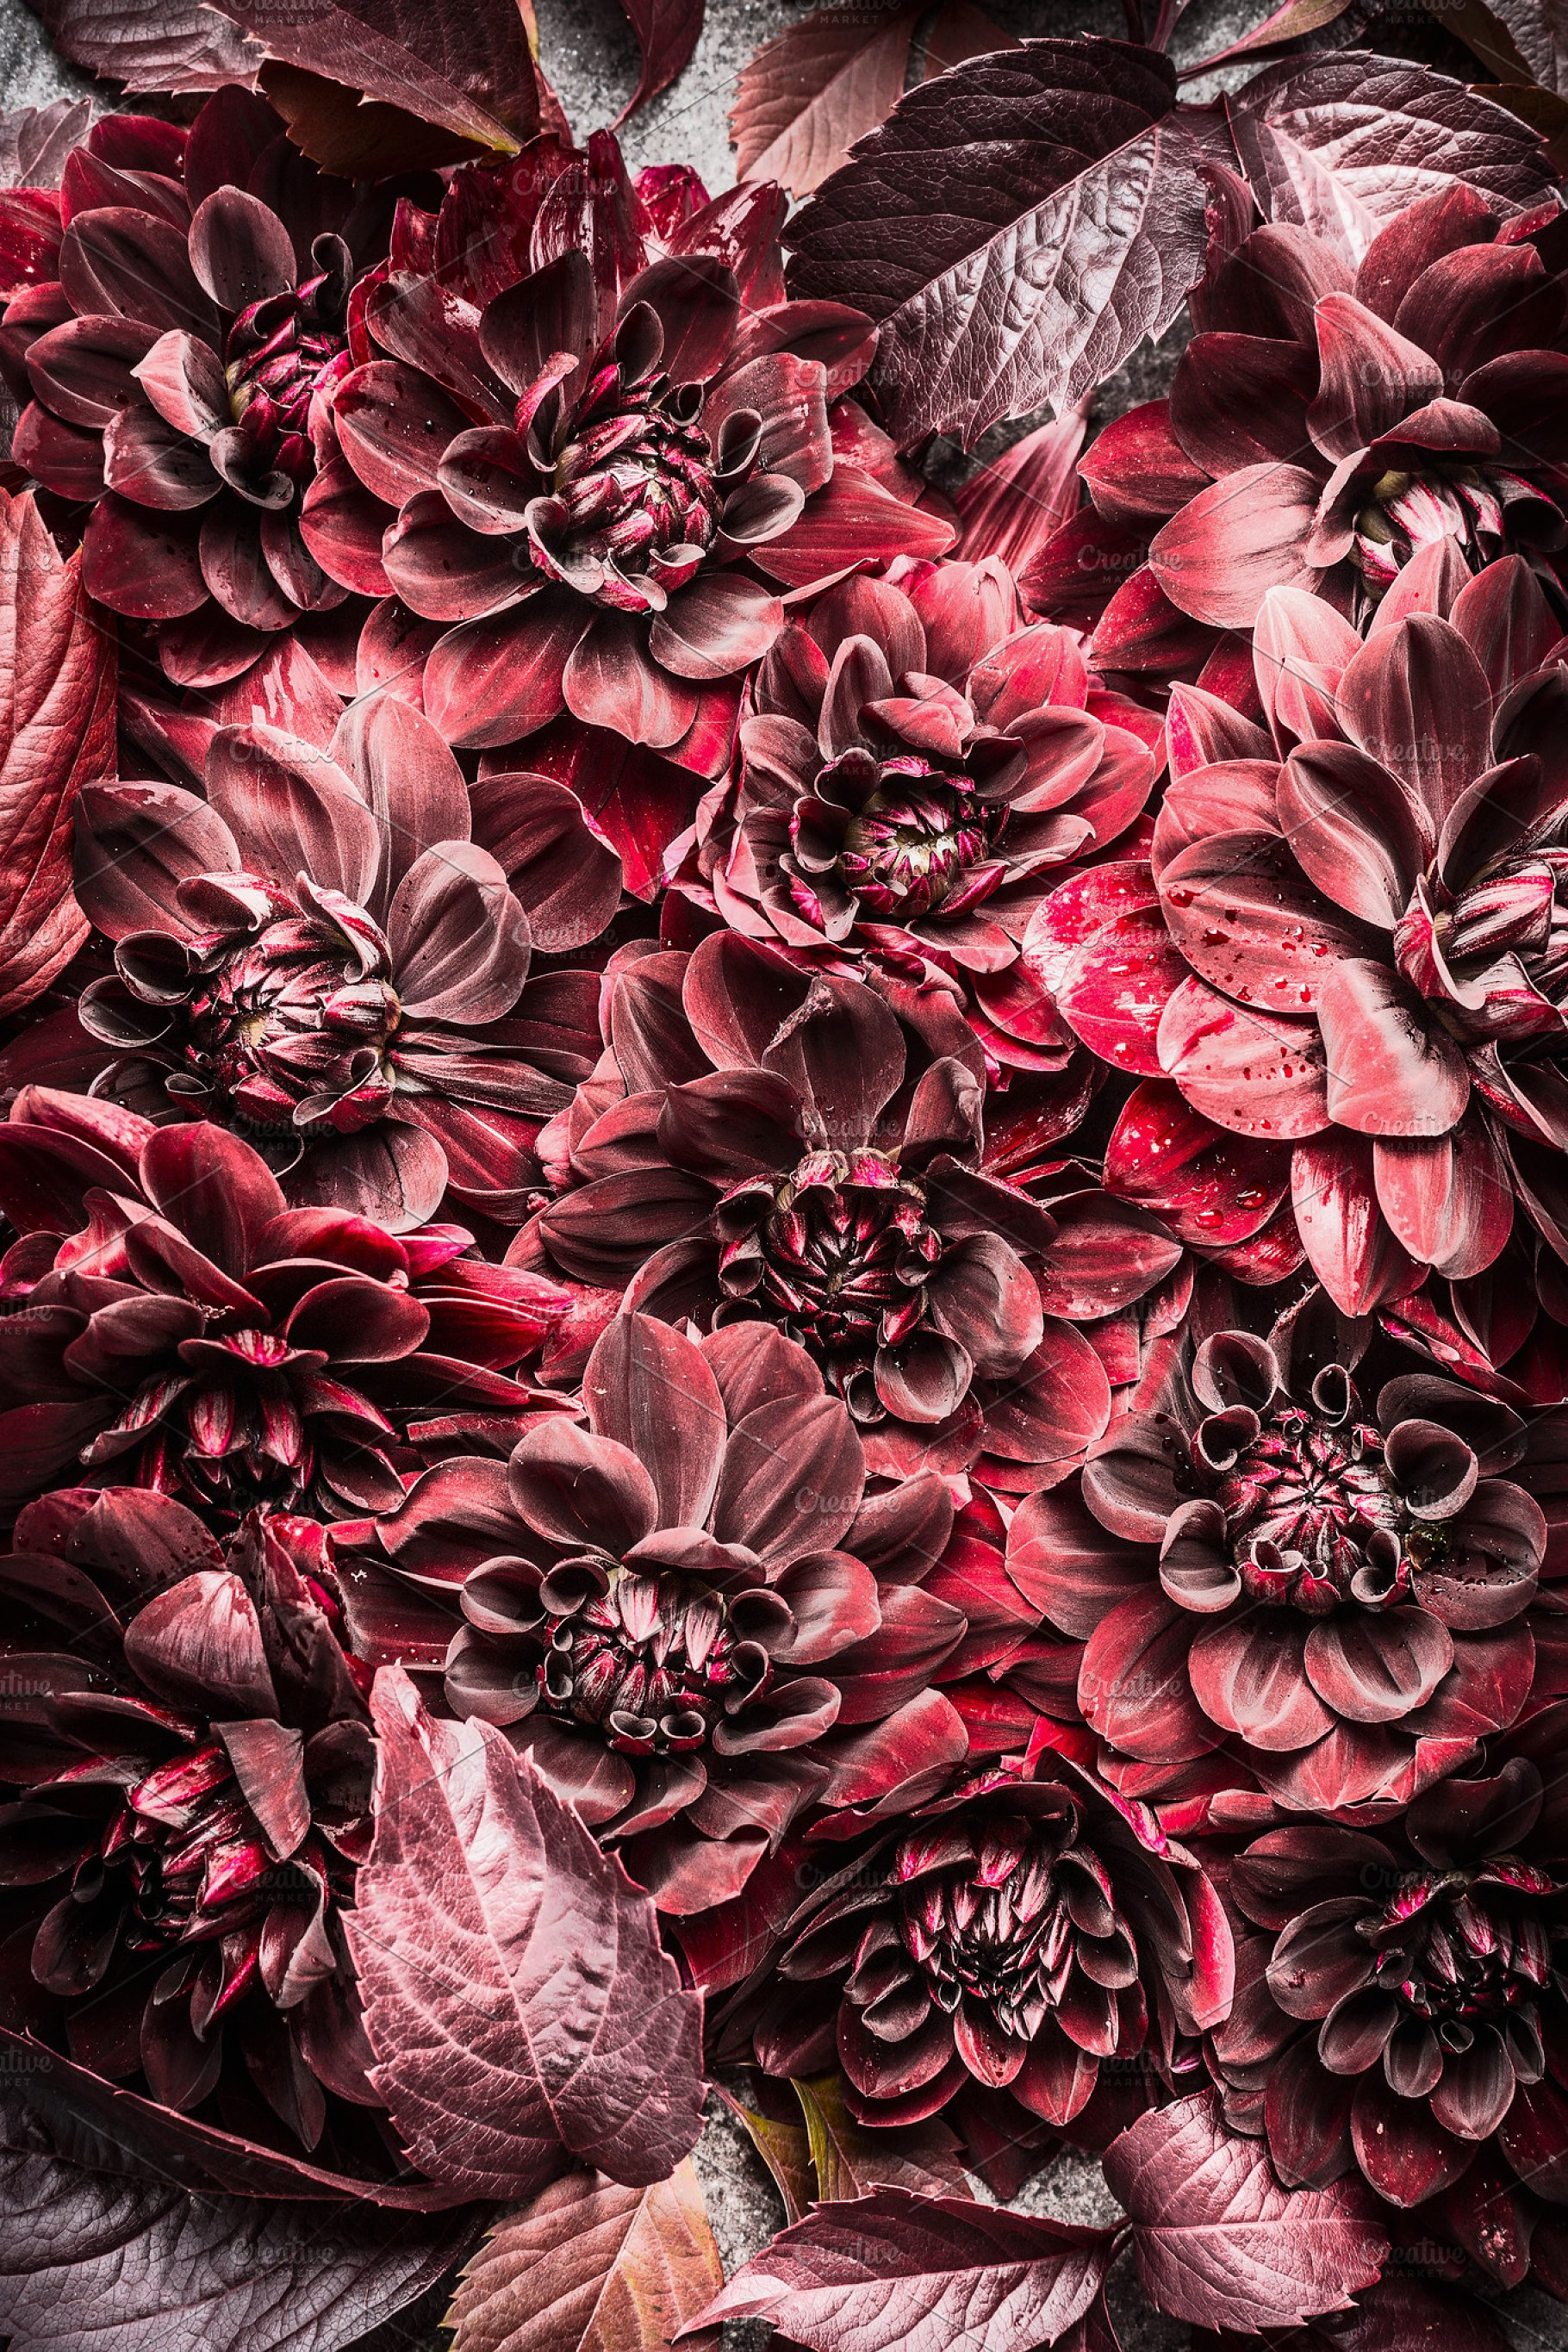 Burgundy Leaves And Flowers High Quality Nature Stock Photos